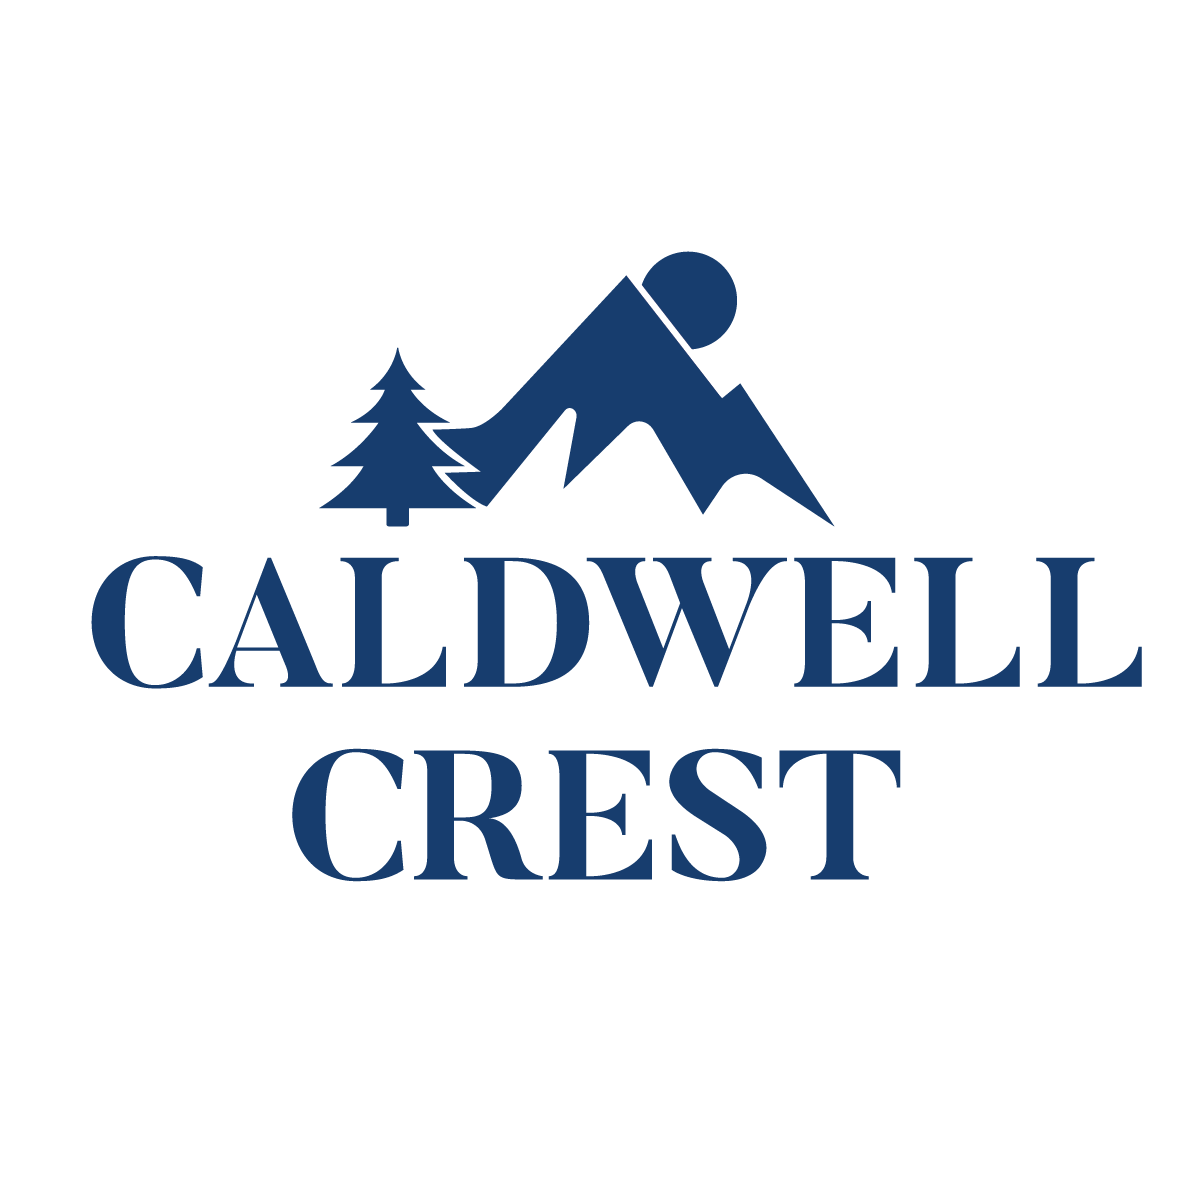 Caldwell Crest, Rush Residential